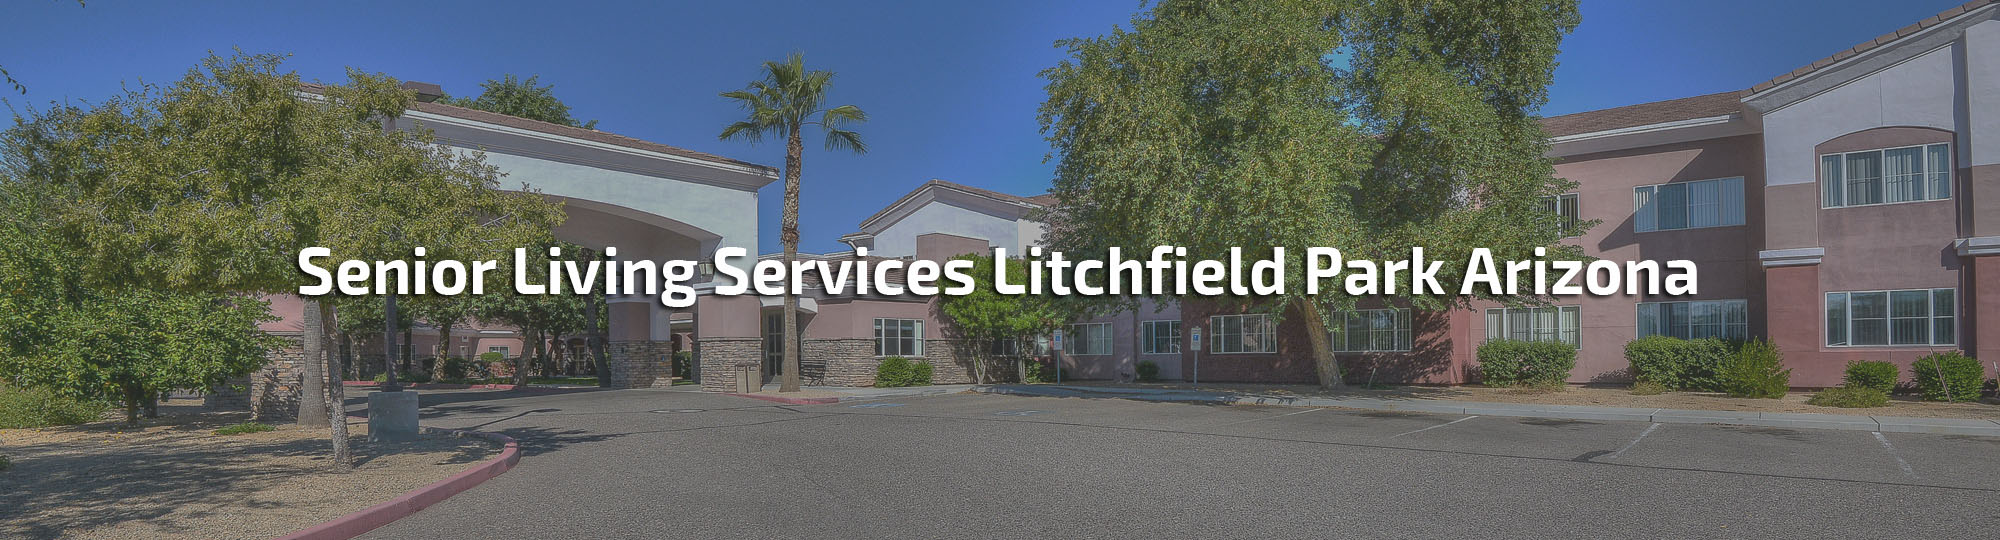 Senior Living Services Litchfield Park Arizona